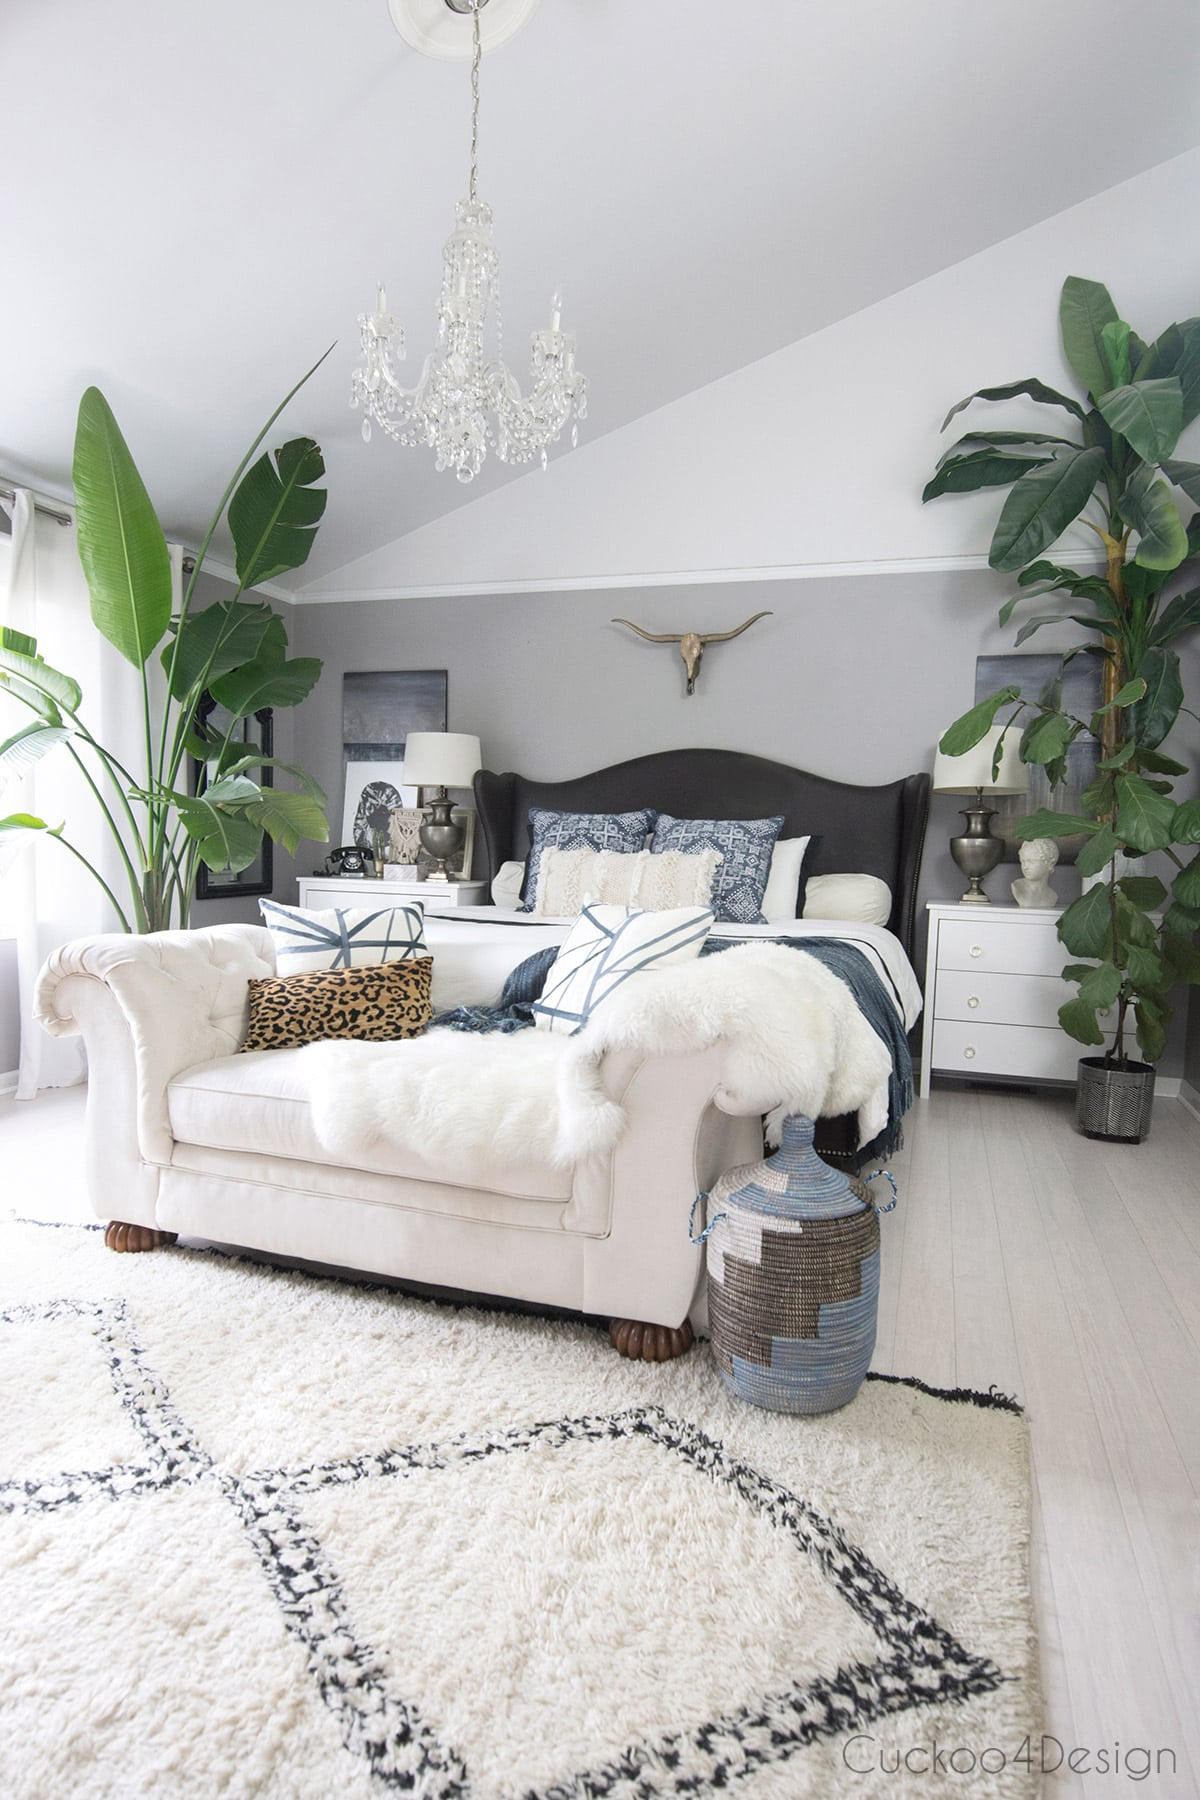 blue, ivory and gray bedroom with lots of plants